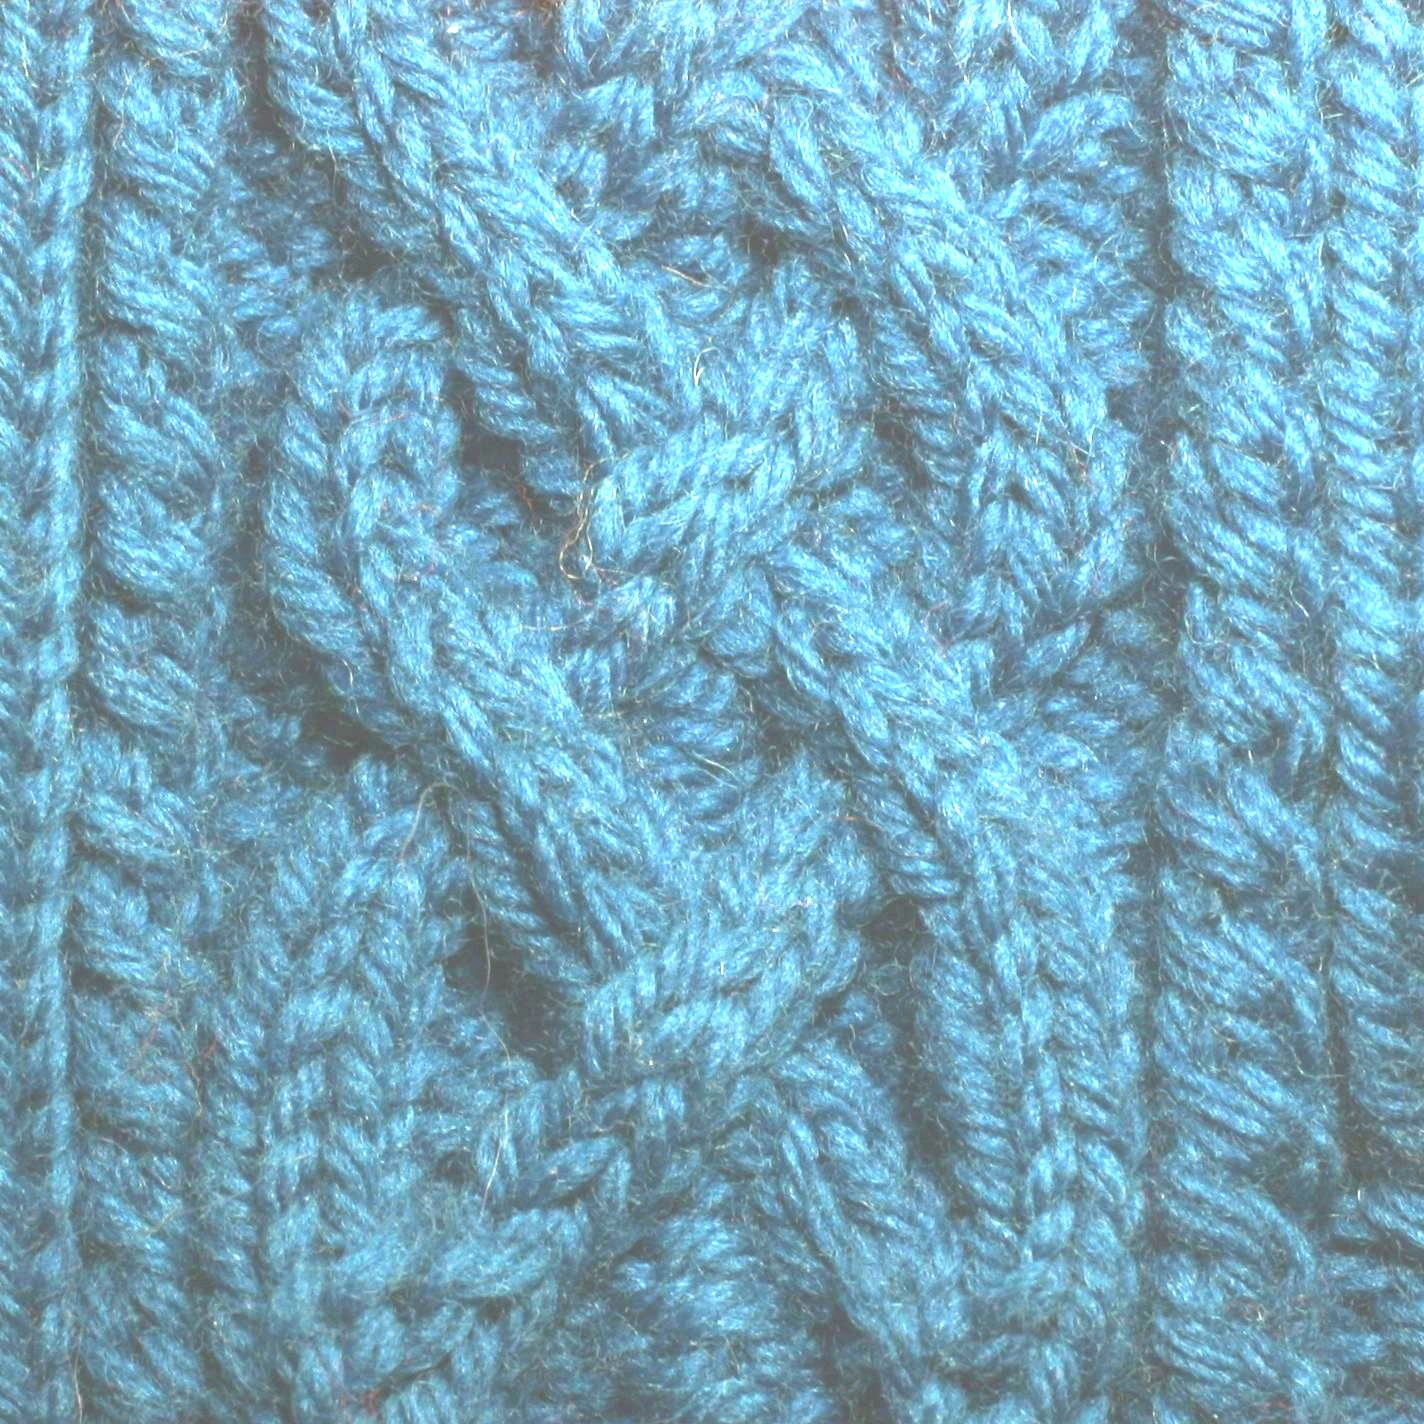 Cable Knitting Stitches Patterns : Original file ? (1,424   1,424 pixels, file size: 400 KB, MIME type ...